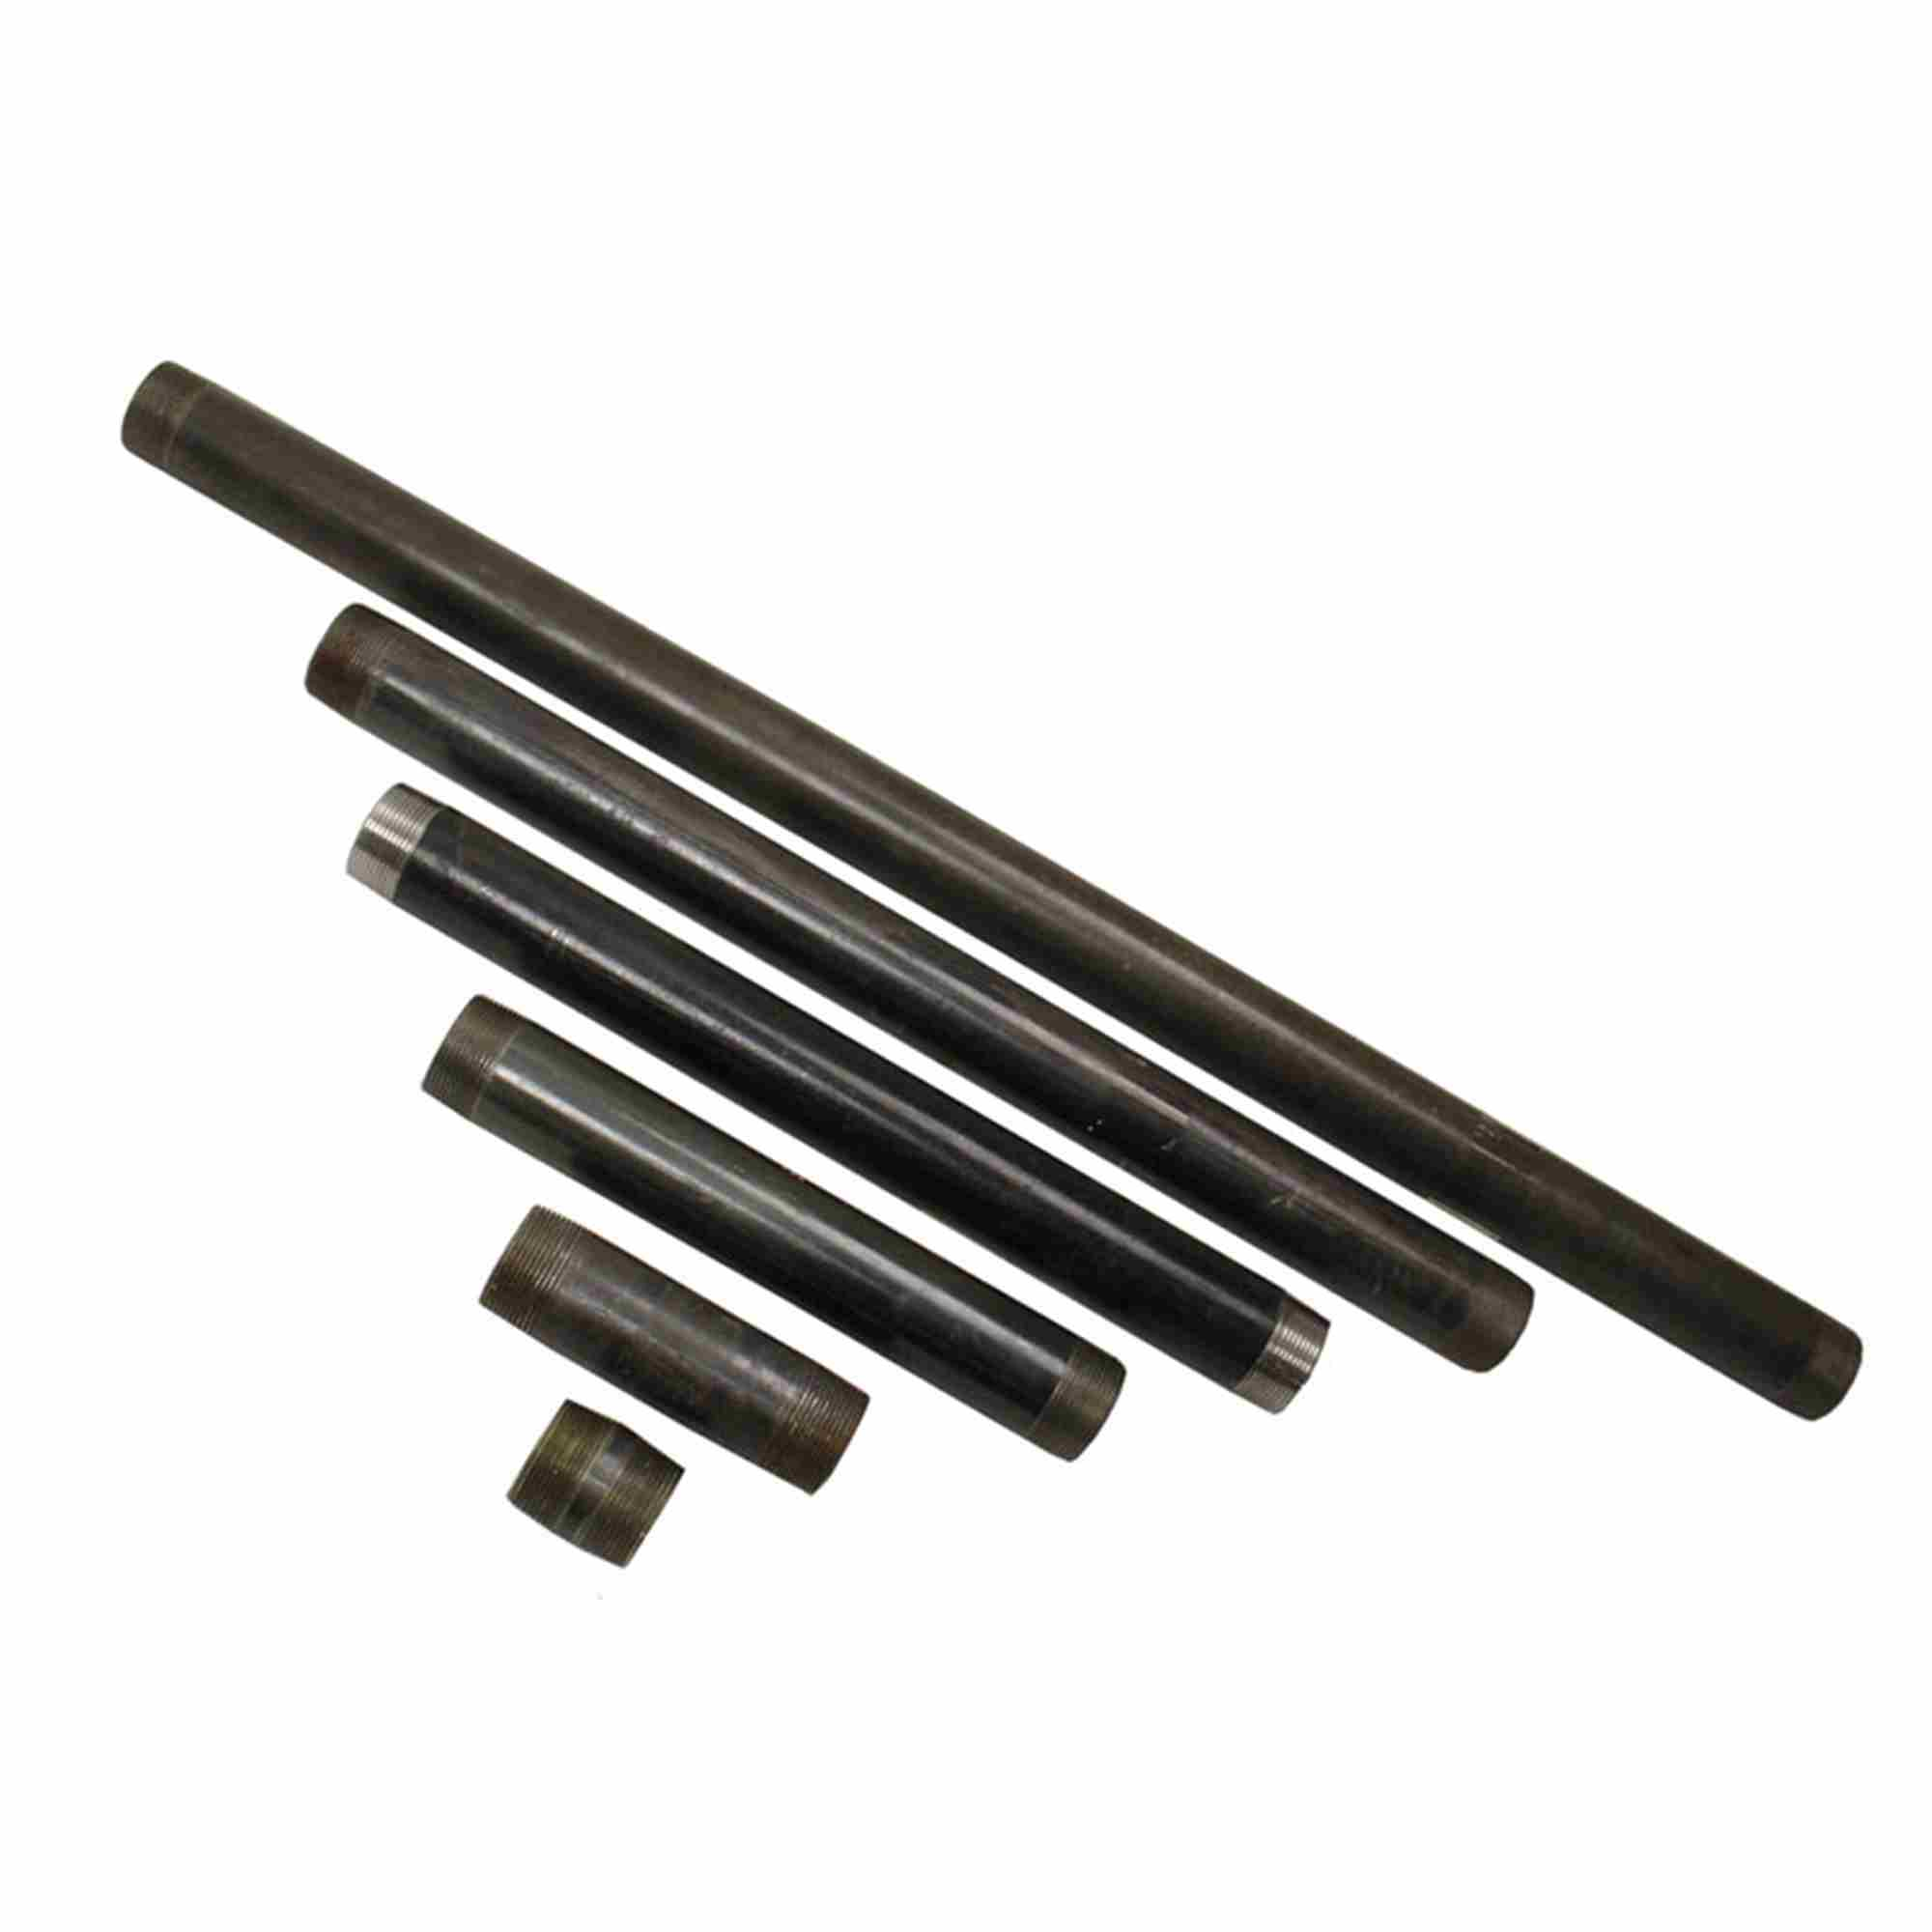 362240-60 5 Pack of Nipples - Black Iron Pipe 1/2 inch x 60 inch long